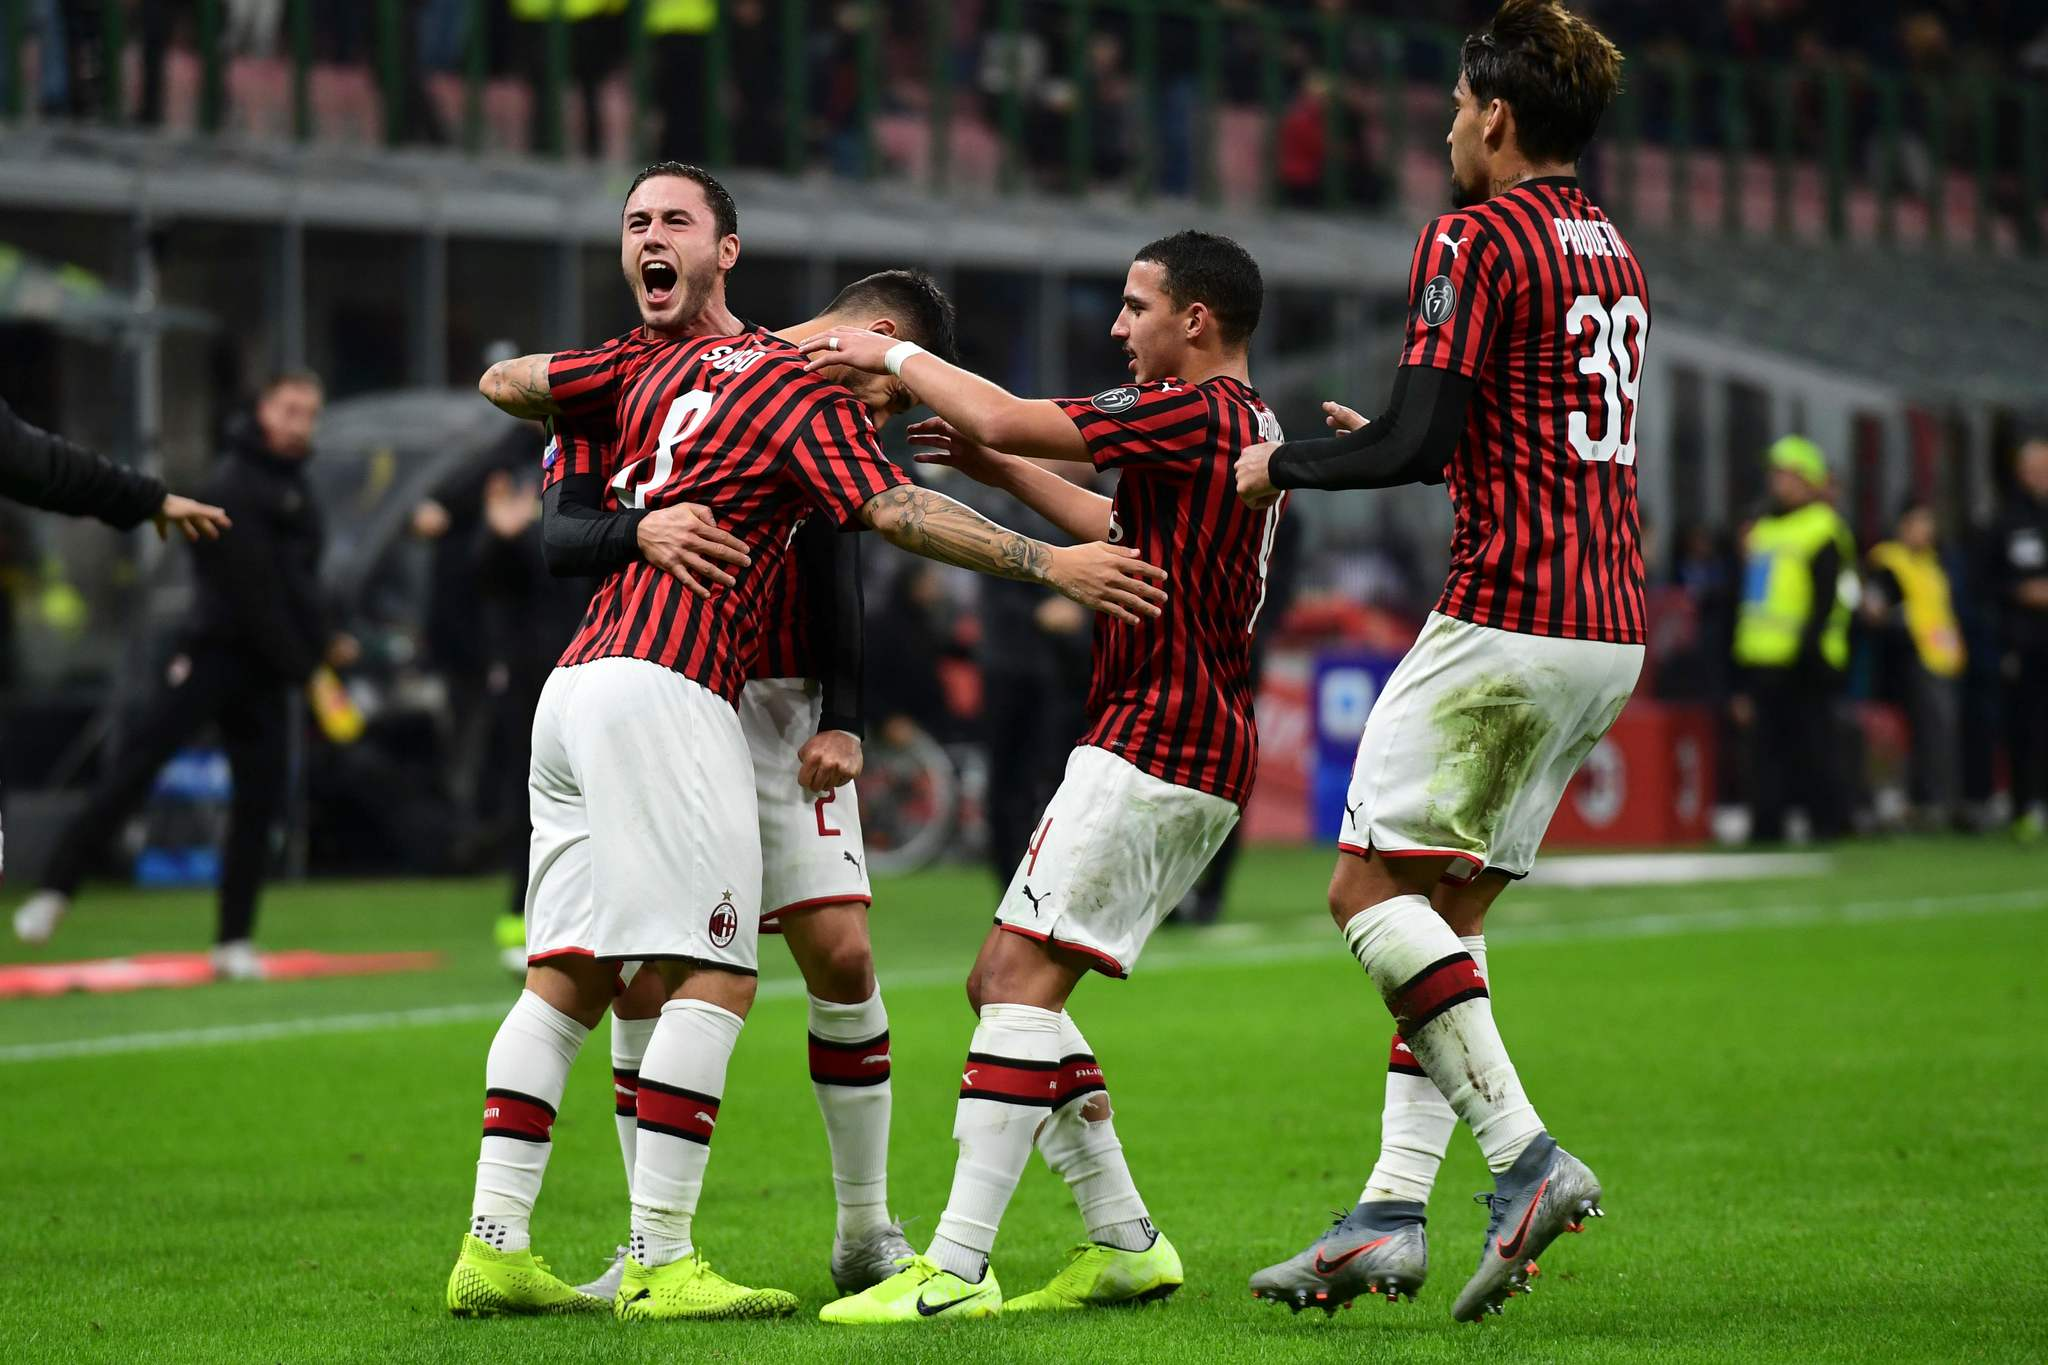 AC <HIT>Milan</HIT>s Spanish forward Suso (2L) celebrates scoring his teams first goal with AC <HIT>Milan</HIT>s Italian defender Davide Calabria (L), AC <HIT>Milan</HIT>s Algerian defender Ismael Bennacer and AC <HIT>Milan</HIT>s Brazilian midfielder Lucas Paqueta (R) during the Italian Serie A football match AC <HIT>Milan</HIT> vs Spal on October 31, 2019 at the San Siro stadium in <HIT>Milan</HIT>. (Photo by MIGUEL MEDINA / AFP)